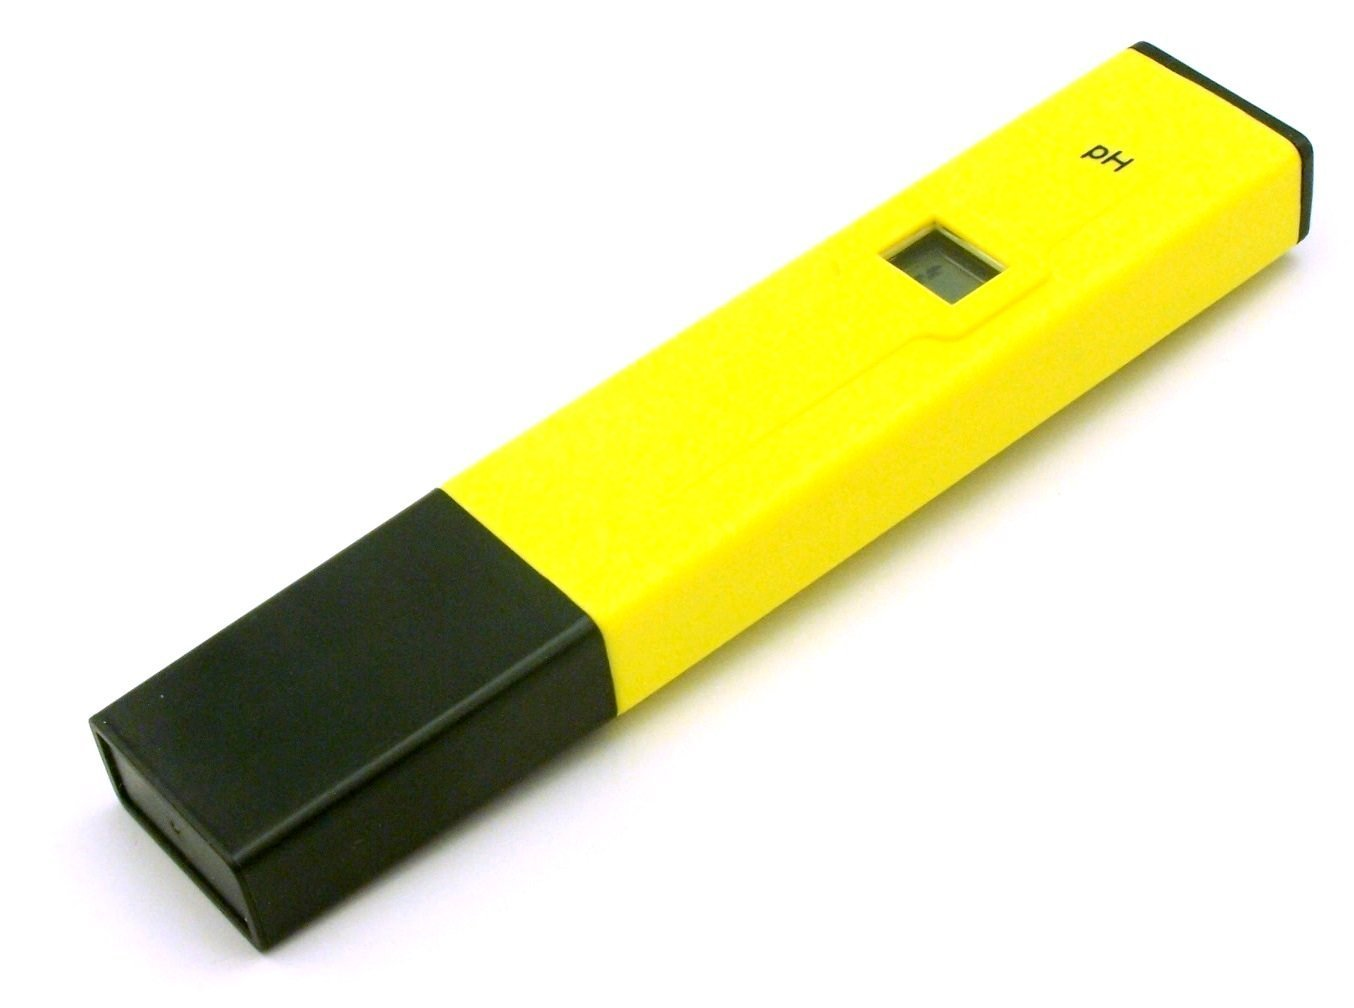 PHTester PH-009 Digital pH Meter Tester, With 2 Pack of Calibration Solution Mixture Included